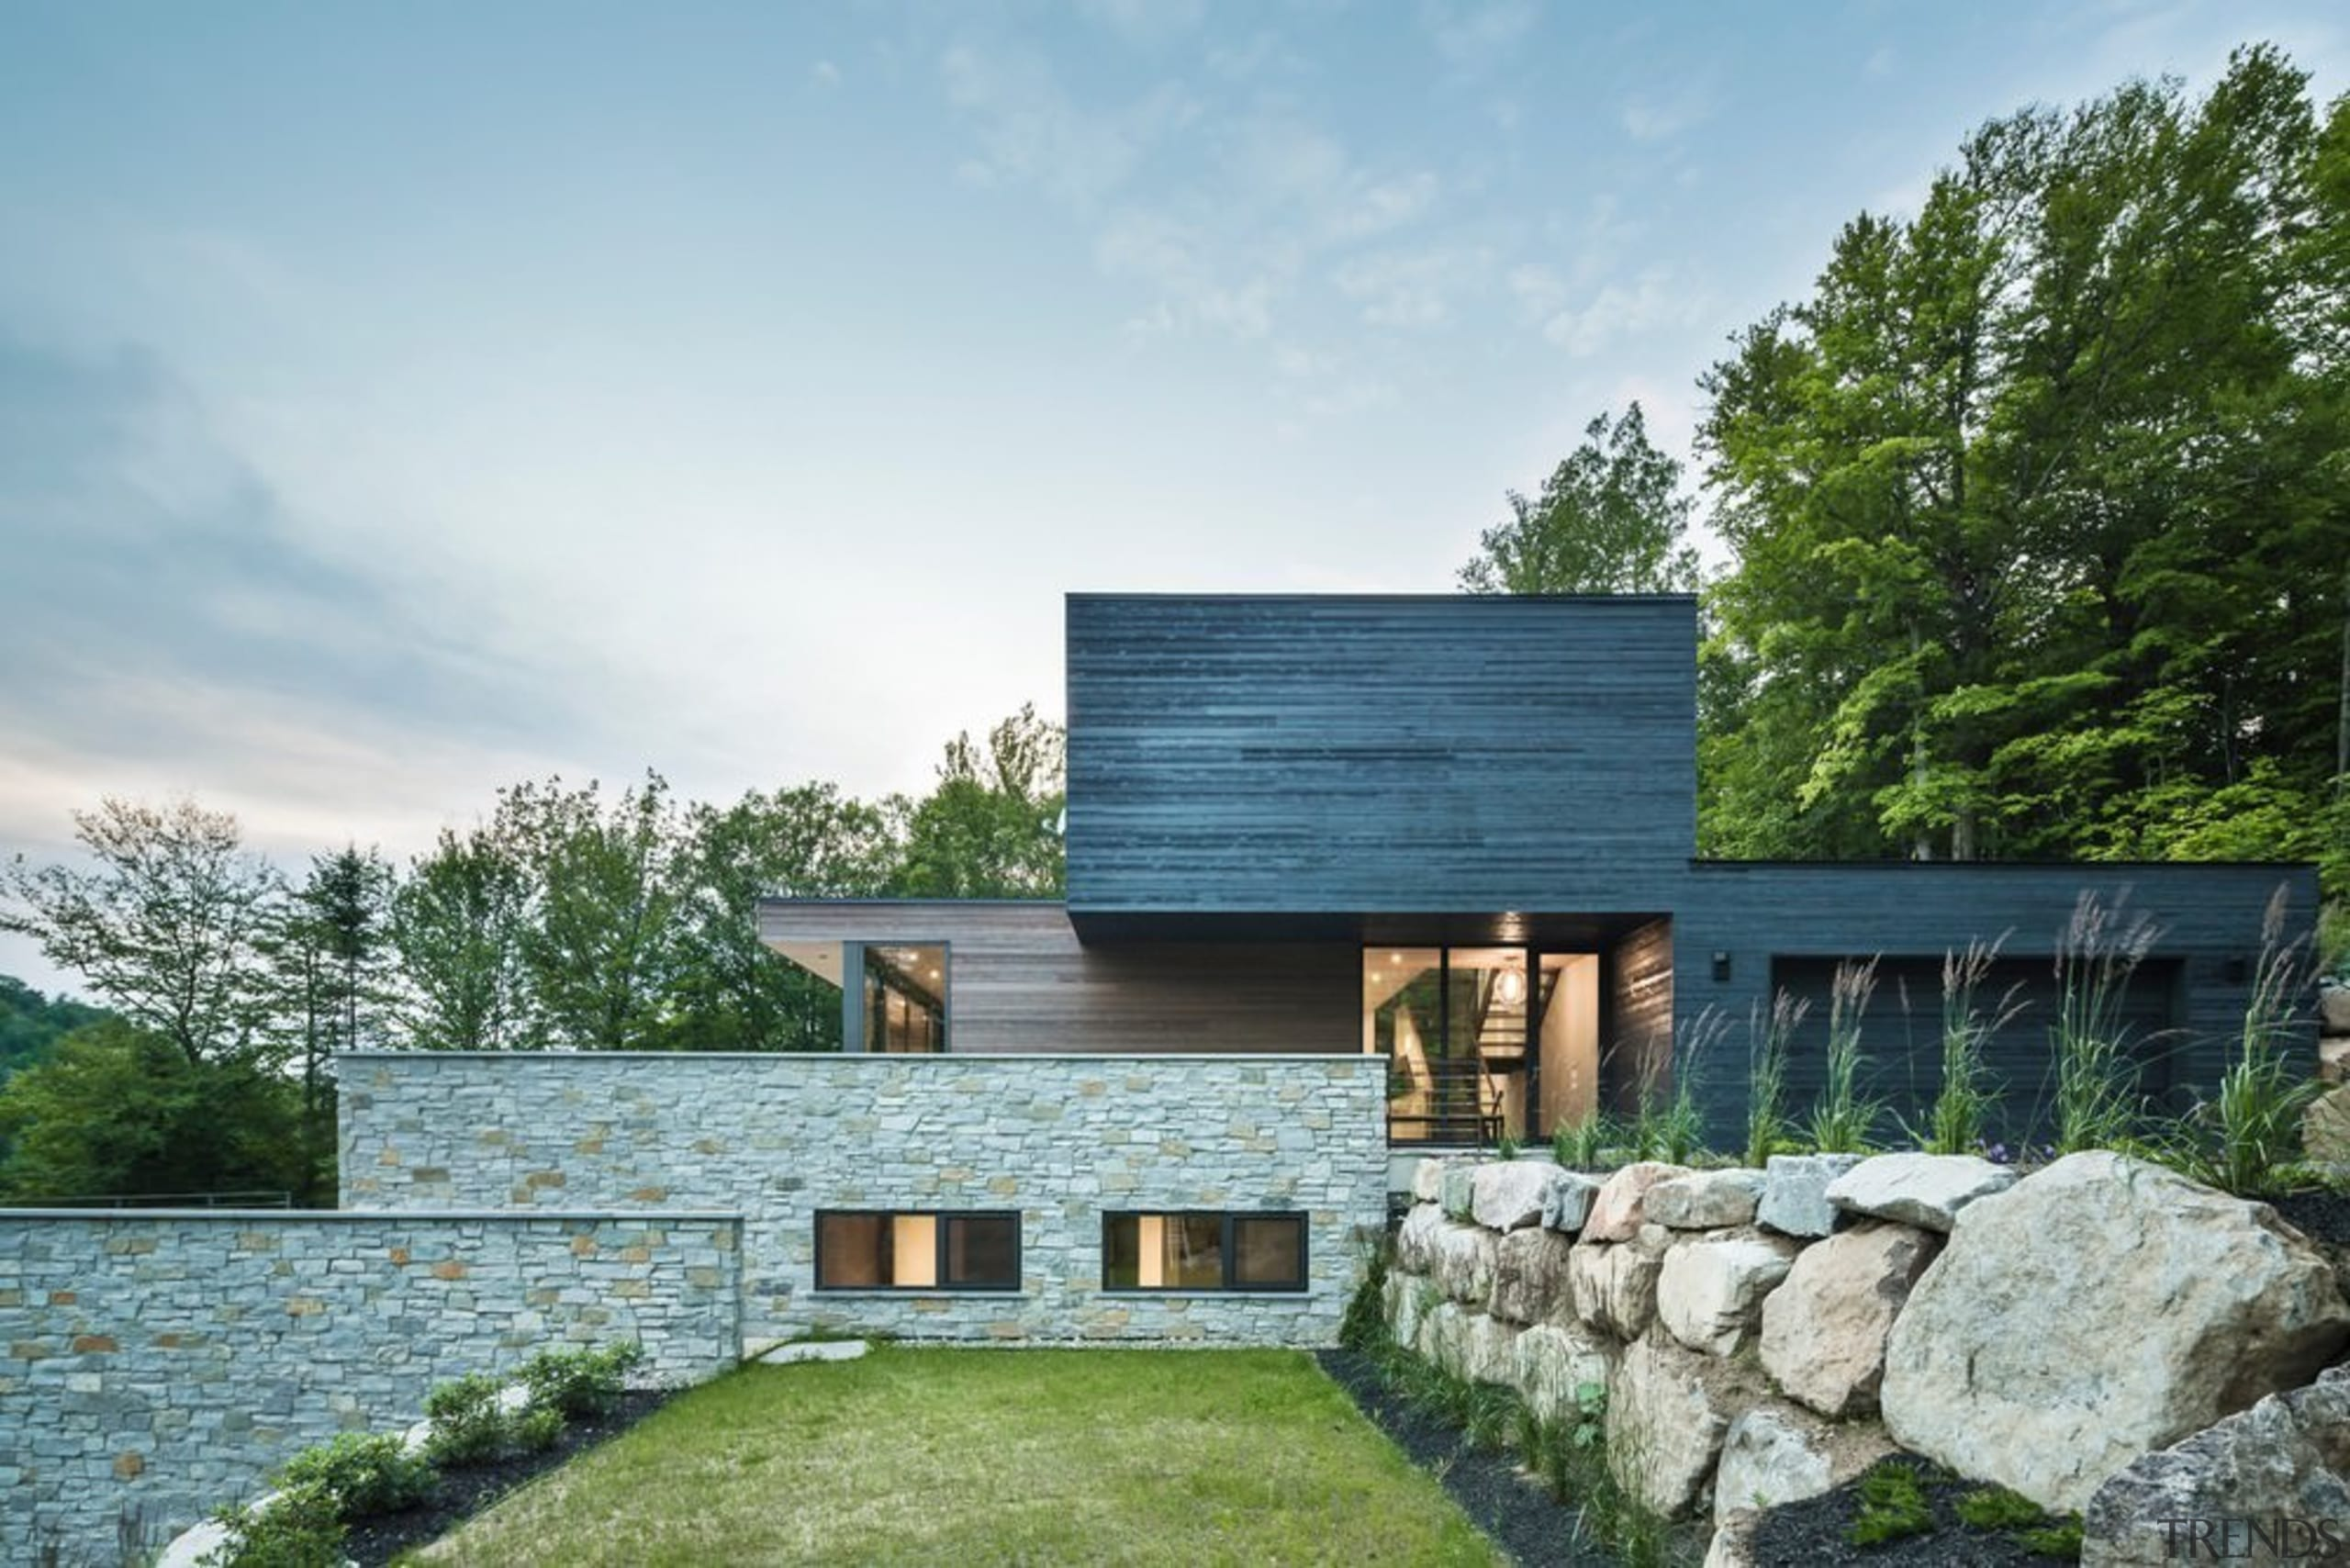 Estrade Residence achieves both privacy and connection to architecture, cottage, estate, facade, farmhouse, home, house, property, real estate, villa, white